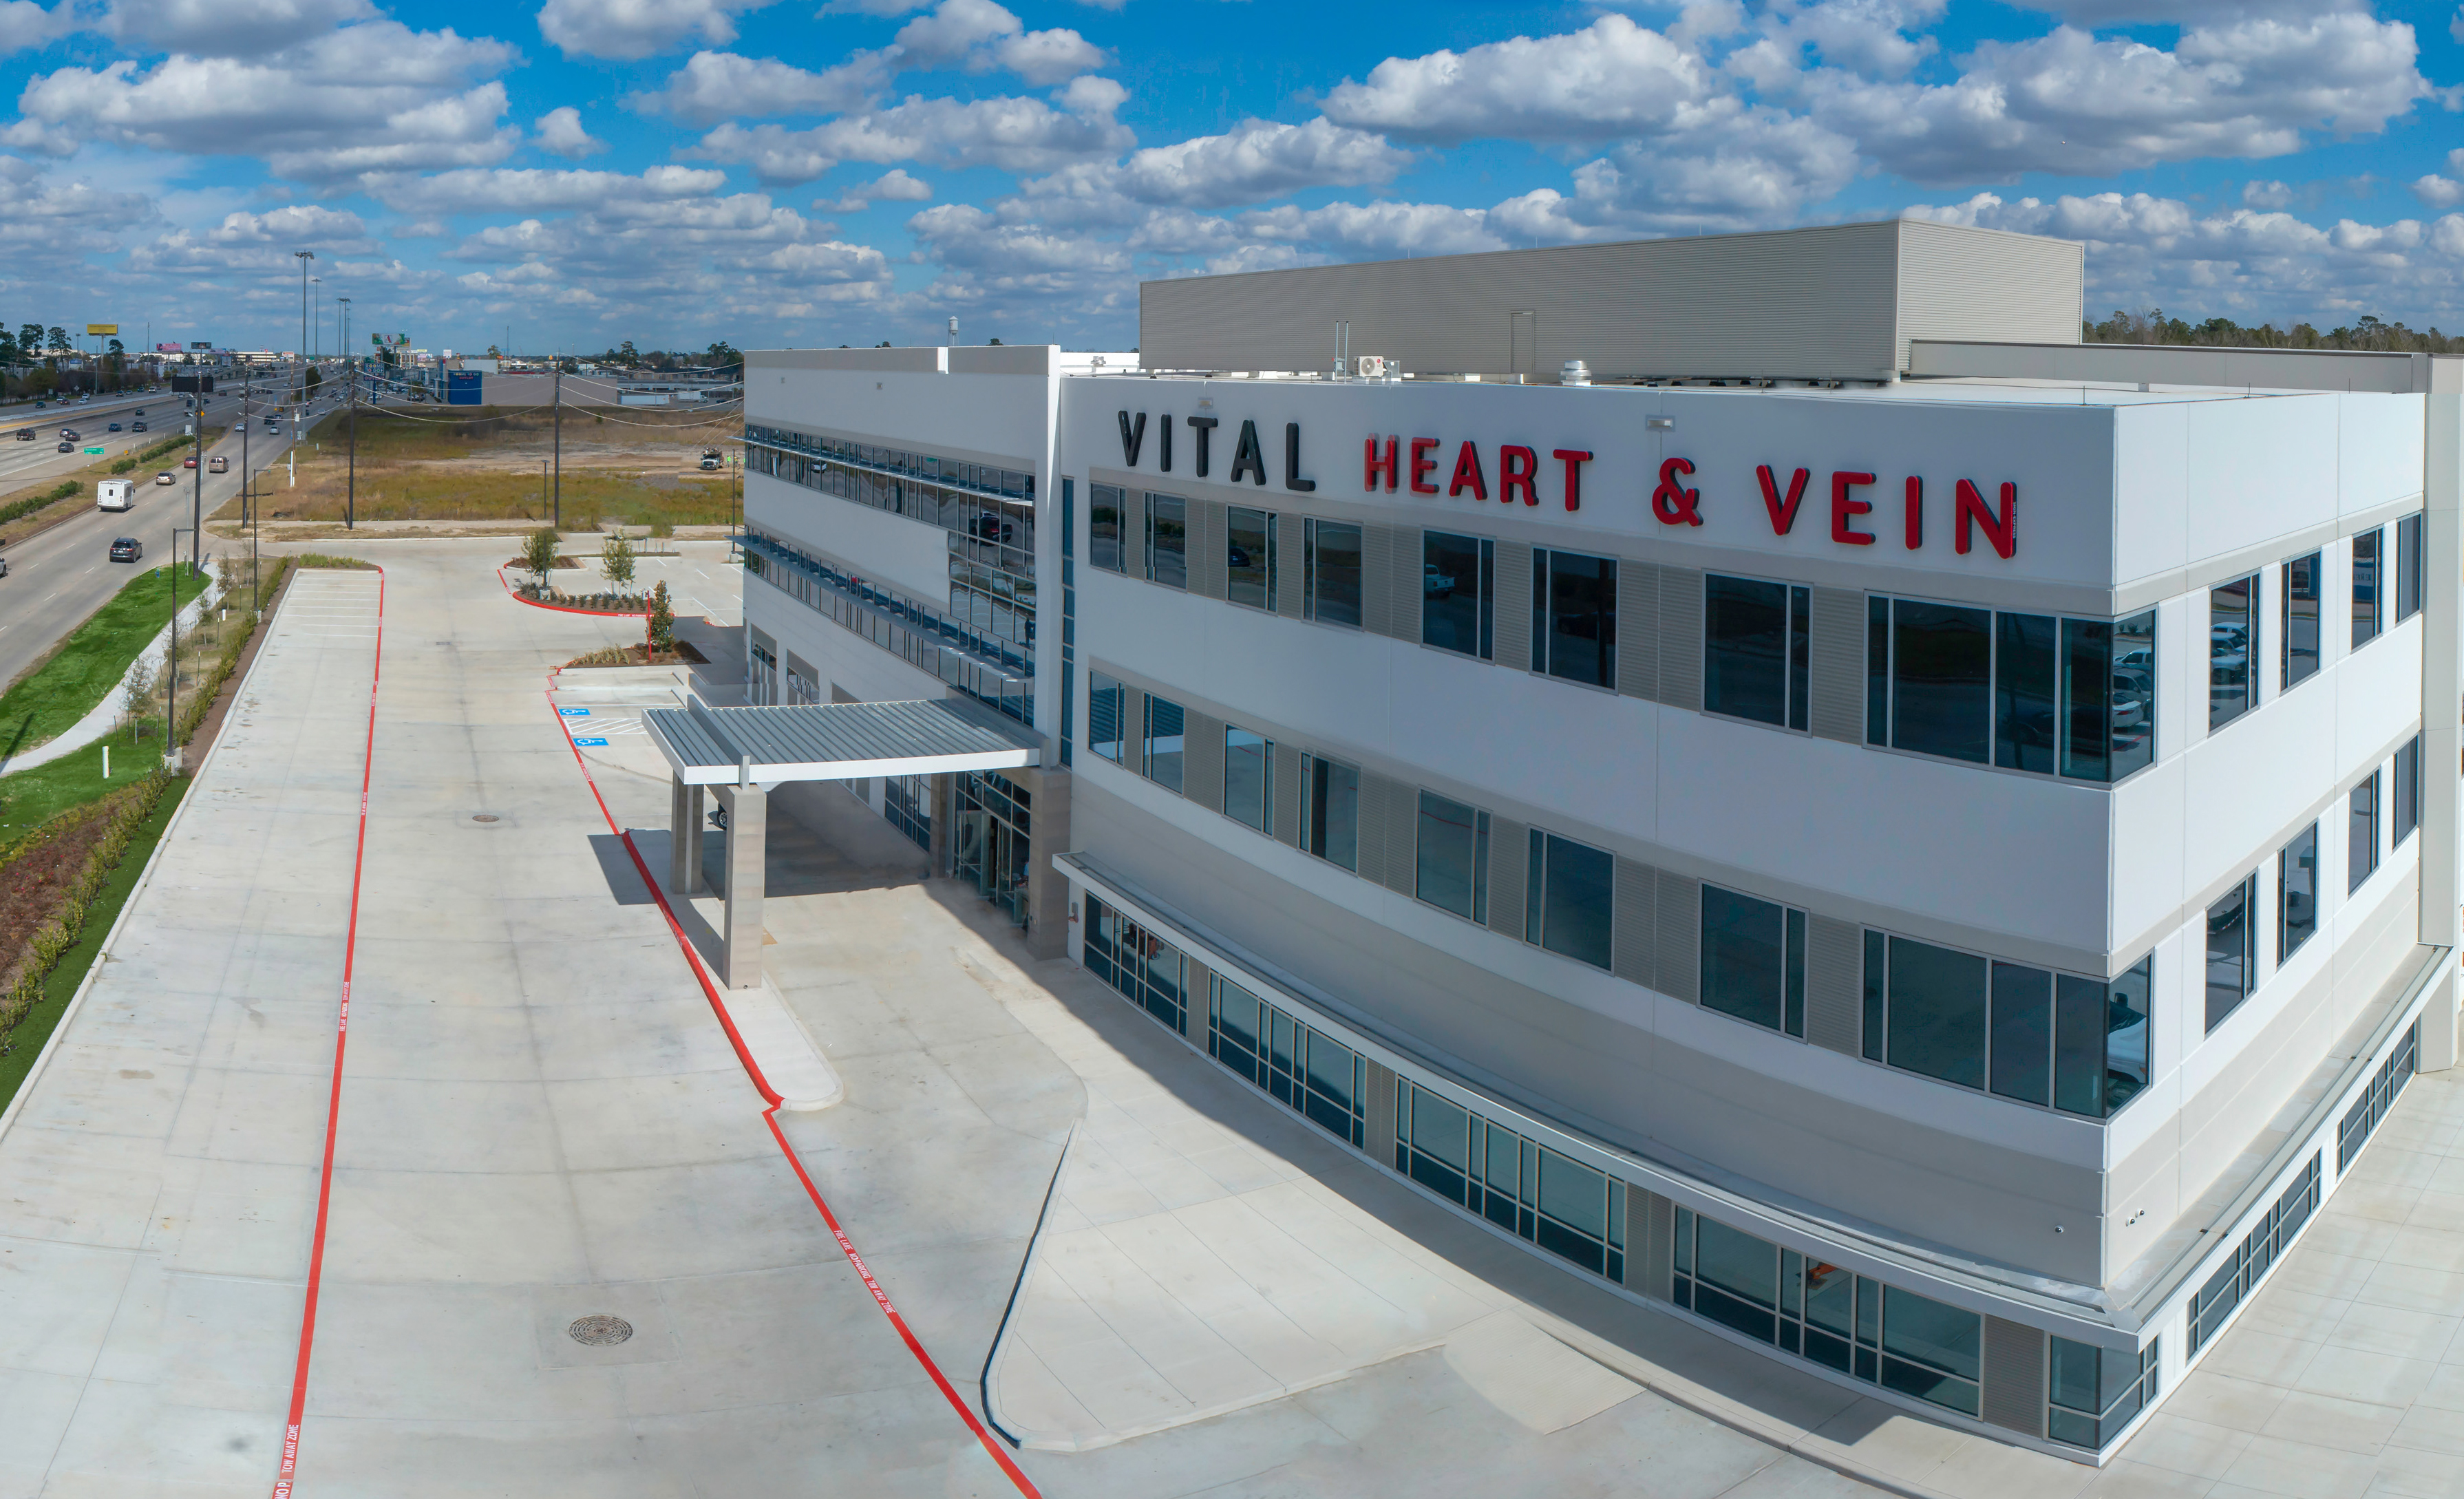 Vital Heart & Vein Consolidates Humble & Kingwood Offices to